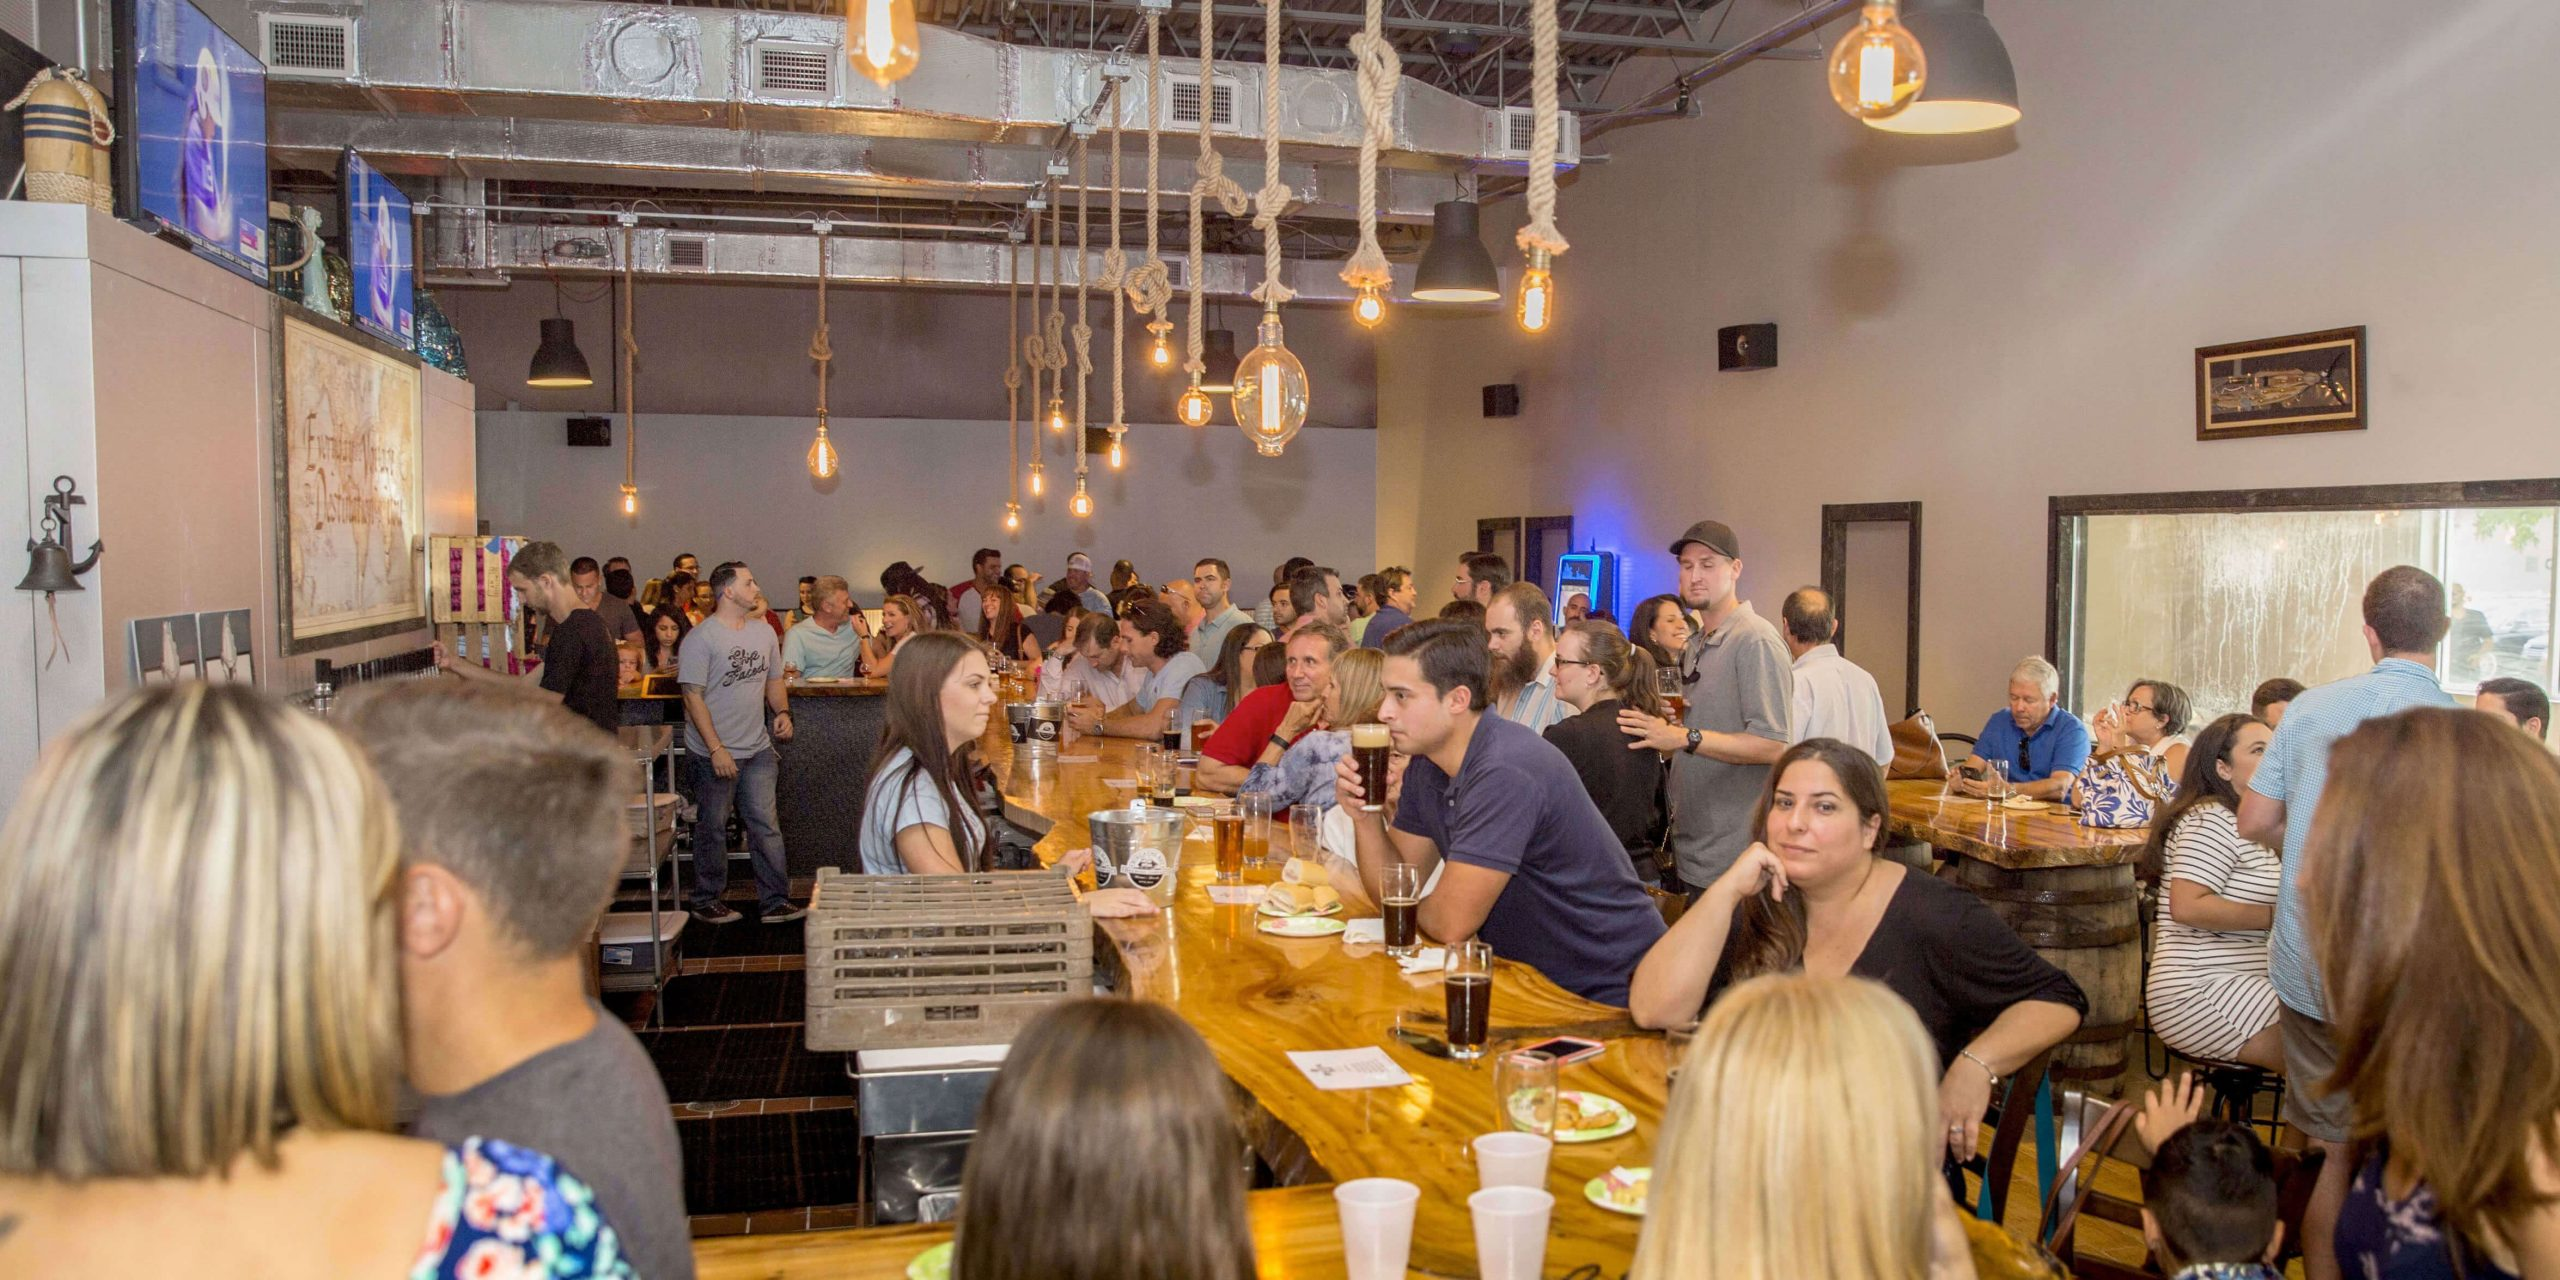 Inside the Biscayne Bay Brewing Company taproom in Miami, Florida